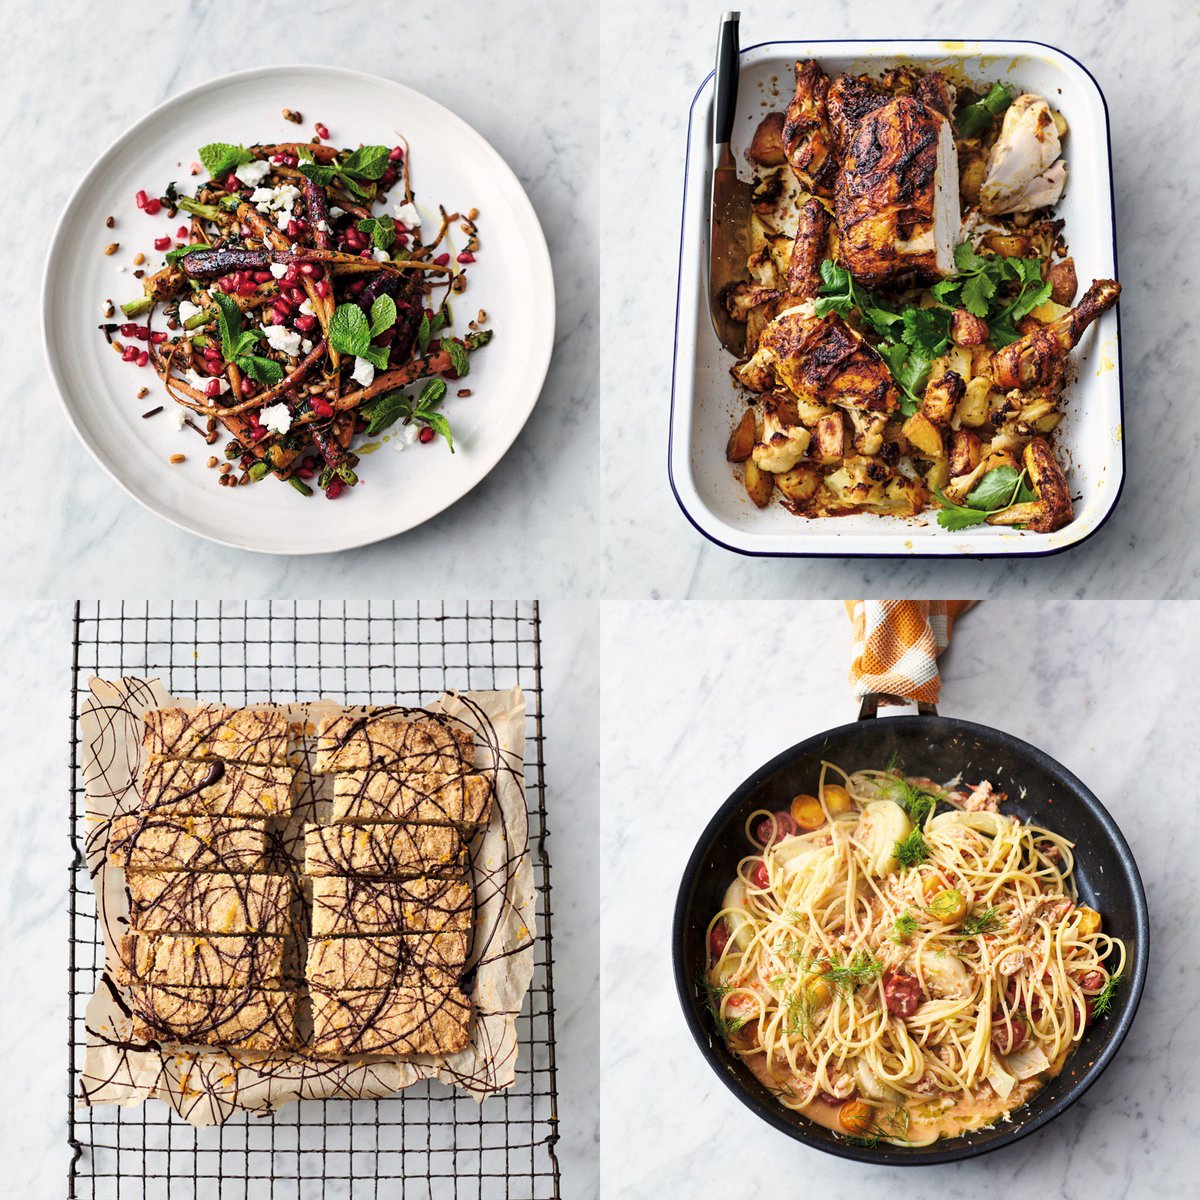 1 HOUR TO GO until #QuickAndEasyFood @Channel4 8pm! https://t.co/C4lKGhJ9us https://t.co/WoOQMkAvJL